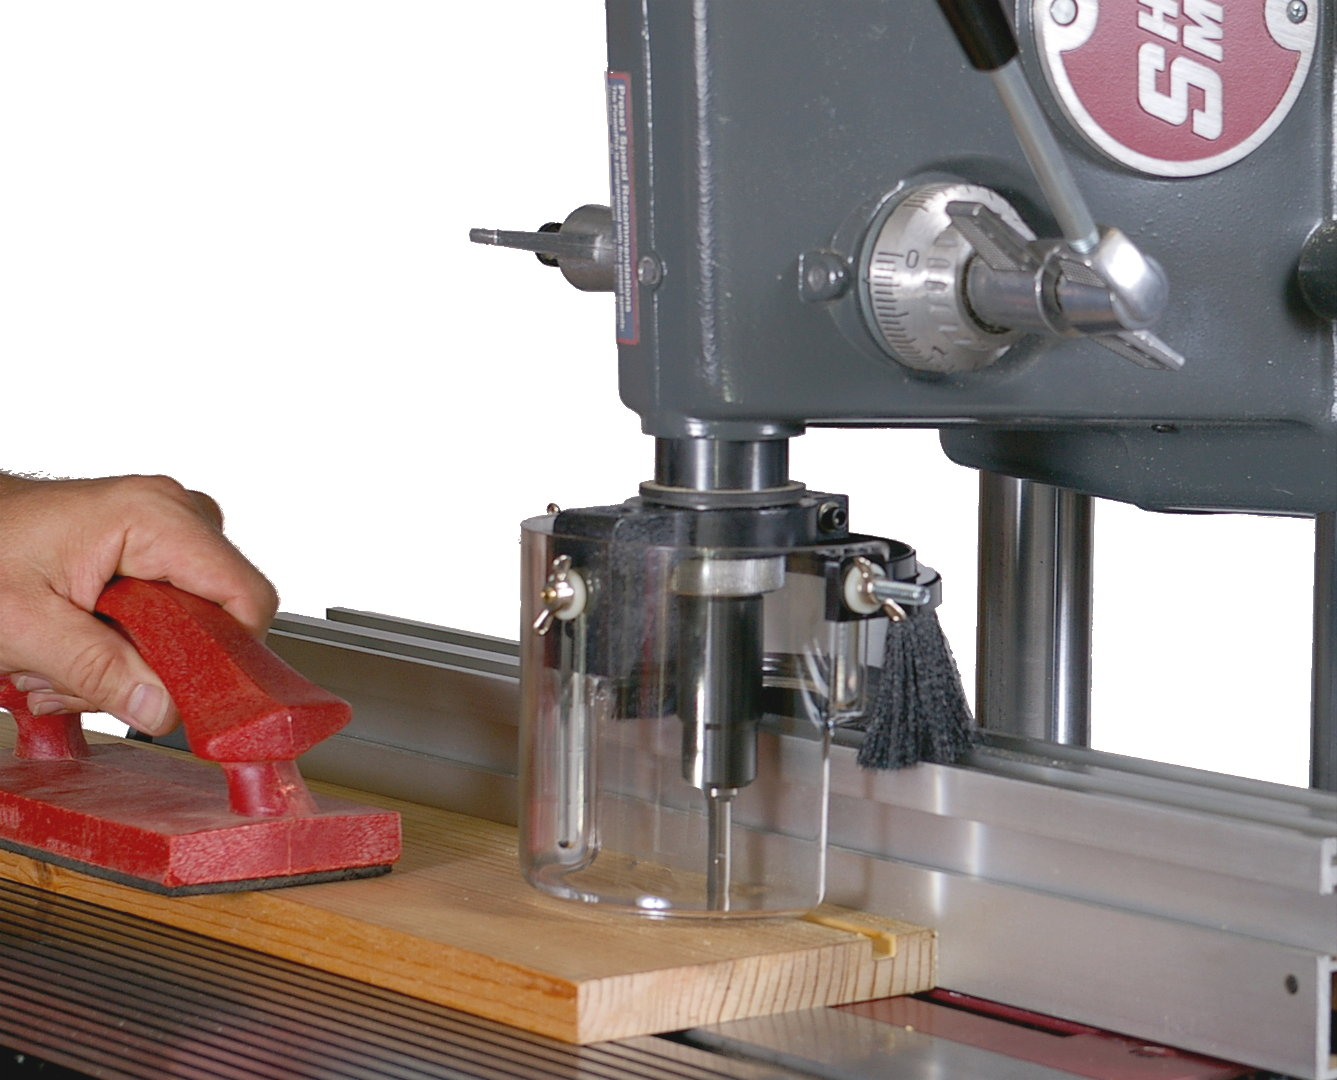 shopsmith 10er drill press. stationary router shopsmith 10er drill press